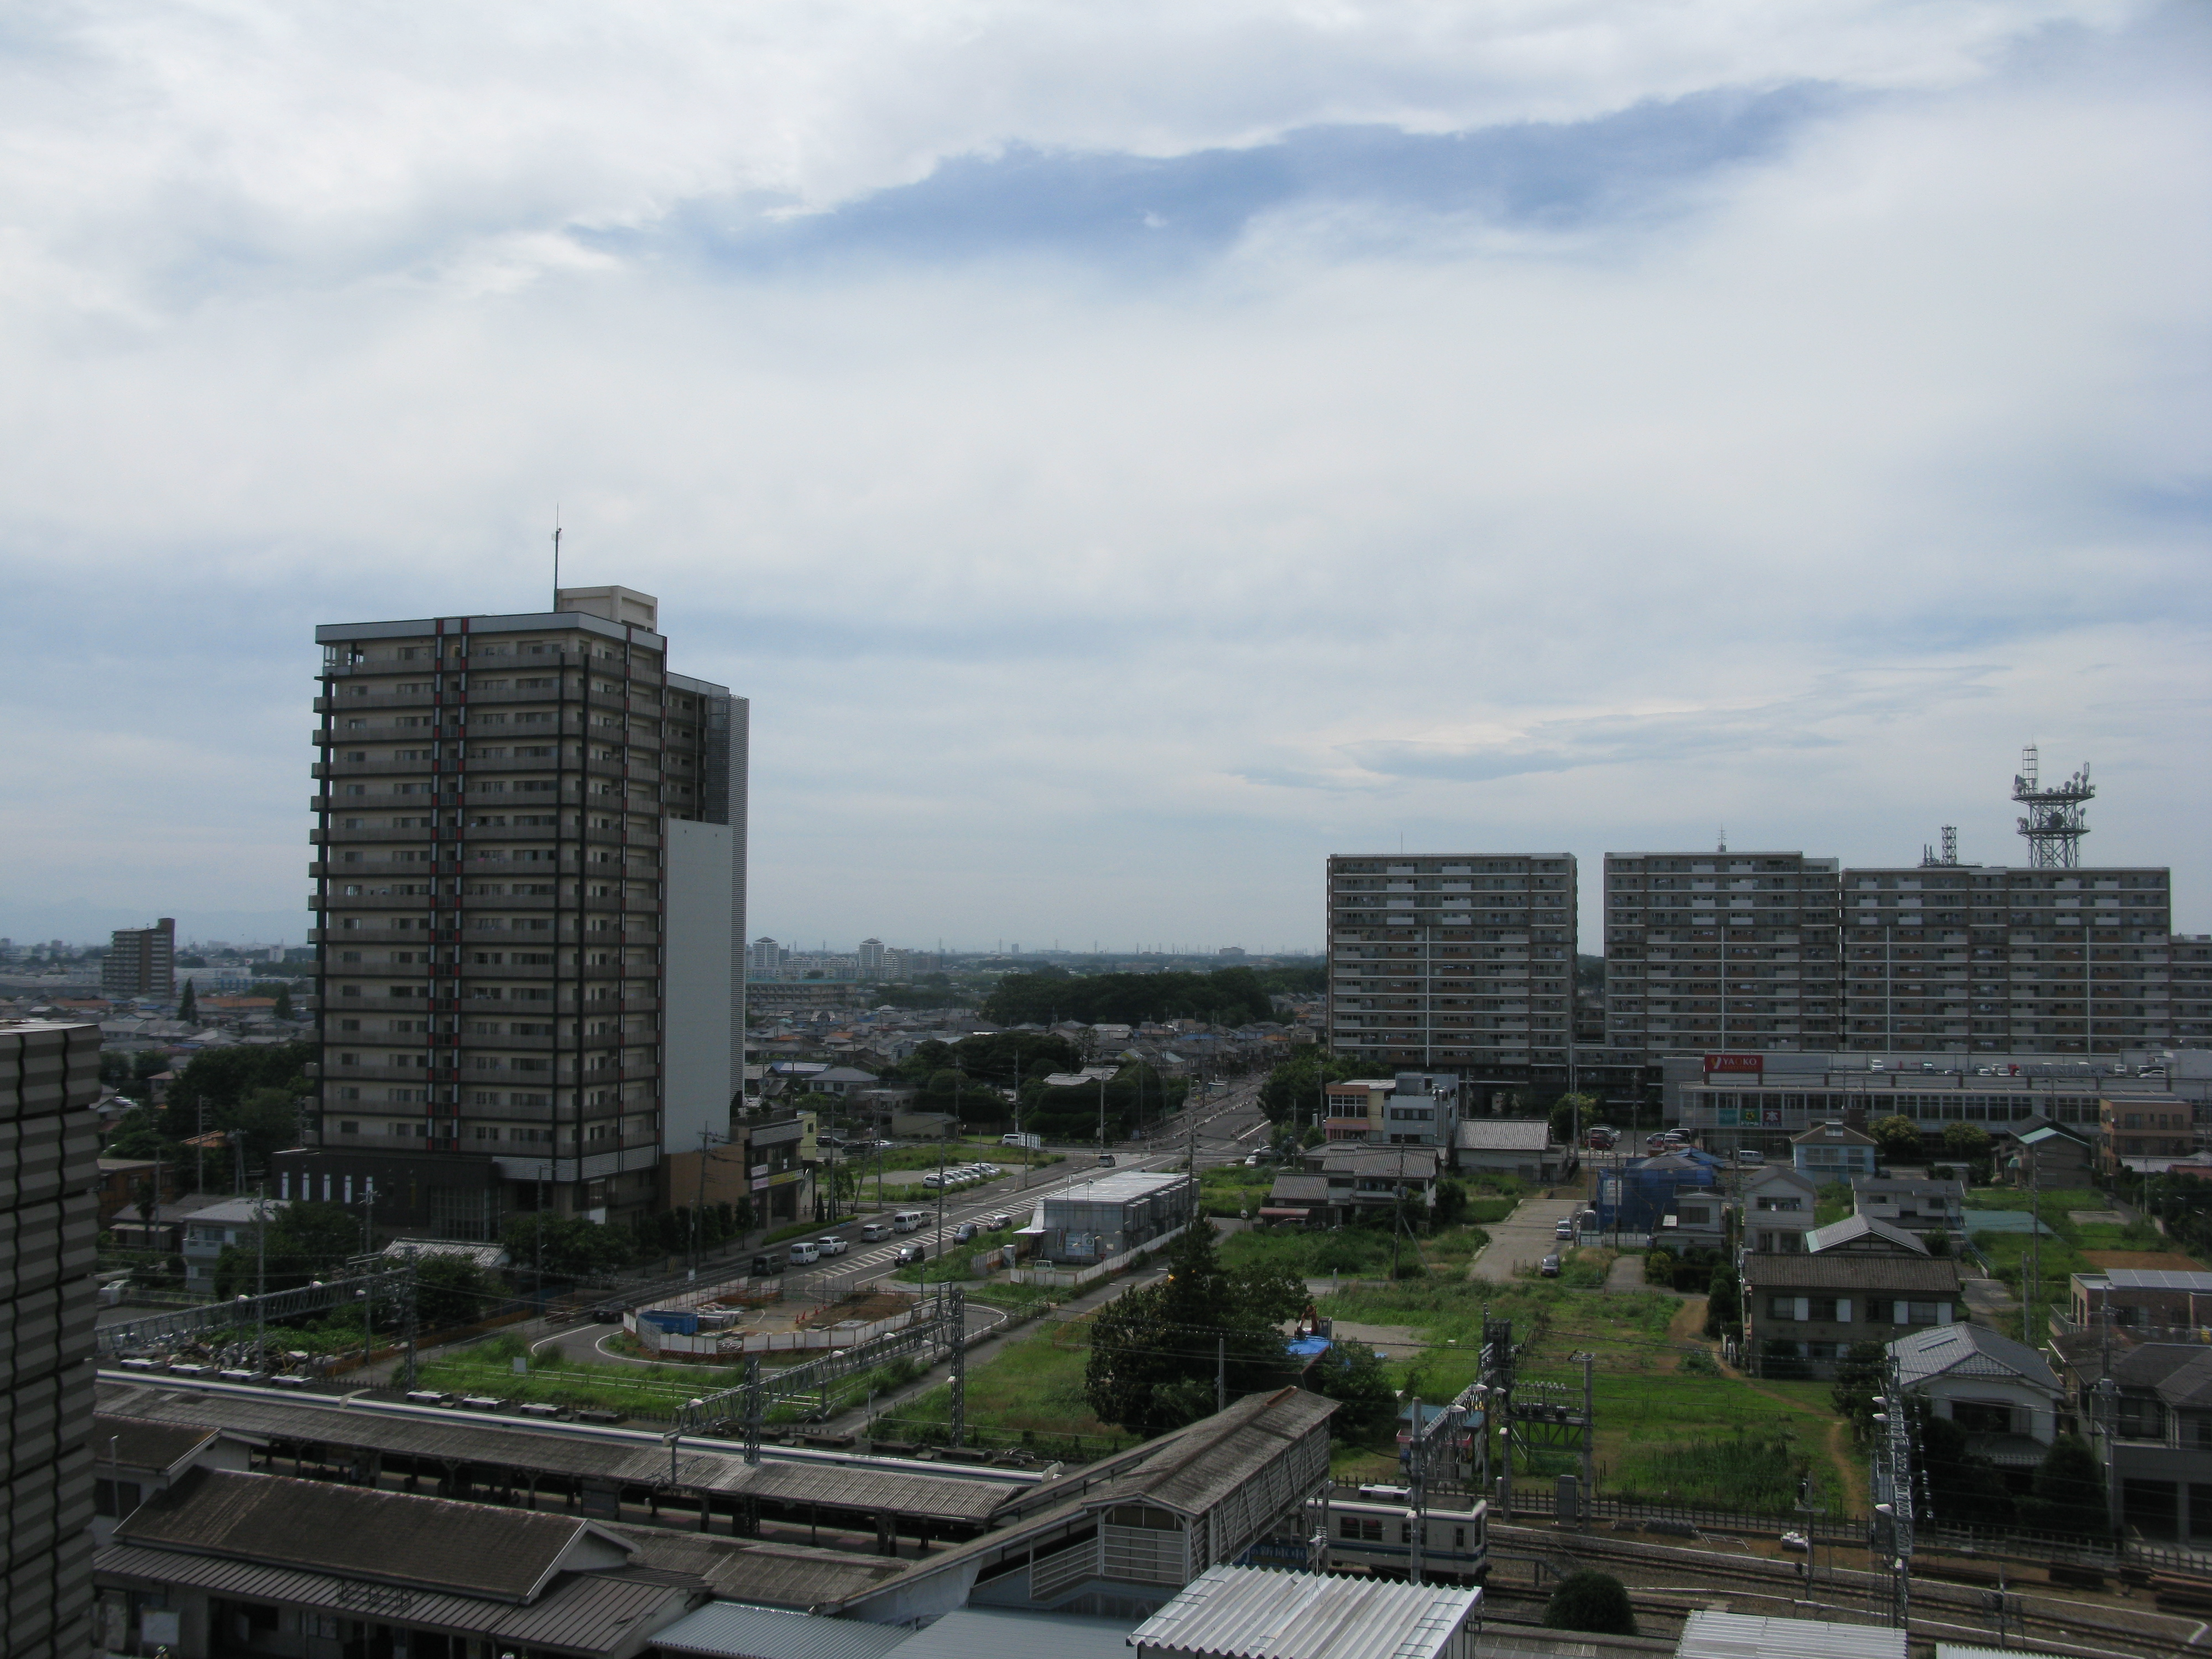 https://upload.wikimedia.org/wikipedia/commons/6/6c/View_of_the_north_direction_from_Iwatsuki_Station.JPG